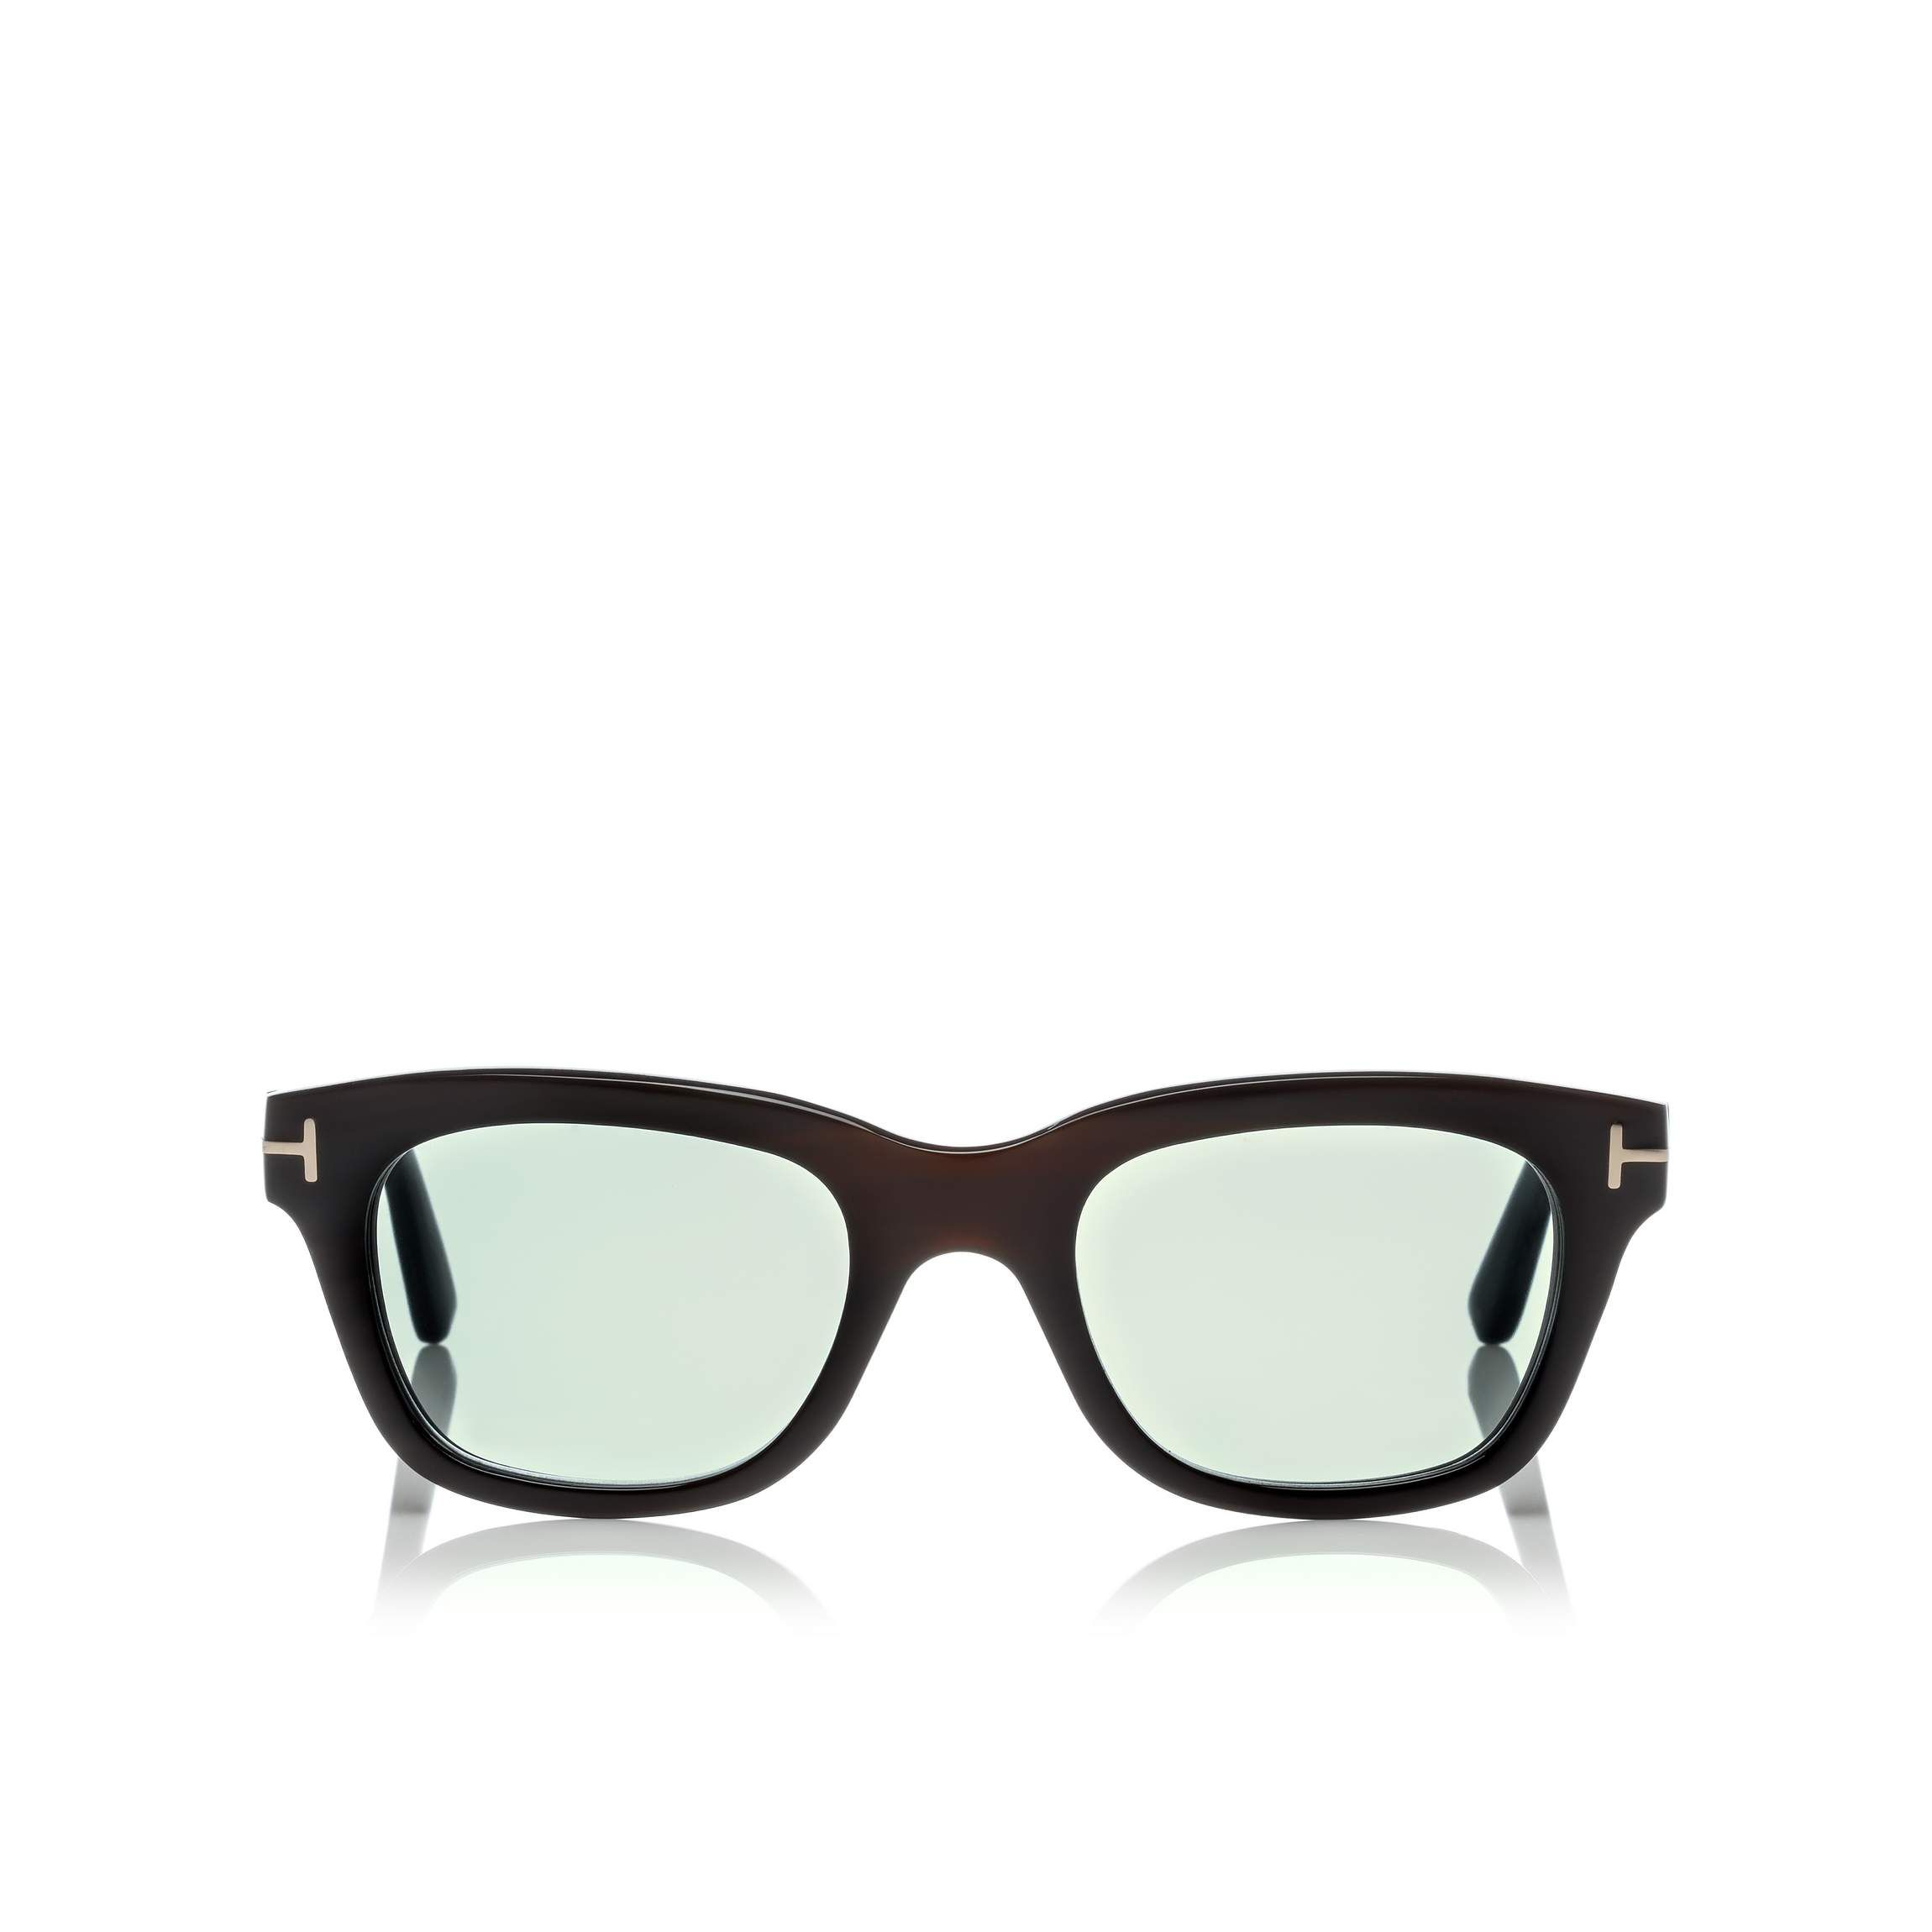 mm free eyeglasses clothing tom unisex today product overstock brown gold black ford shoes shipping